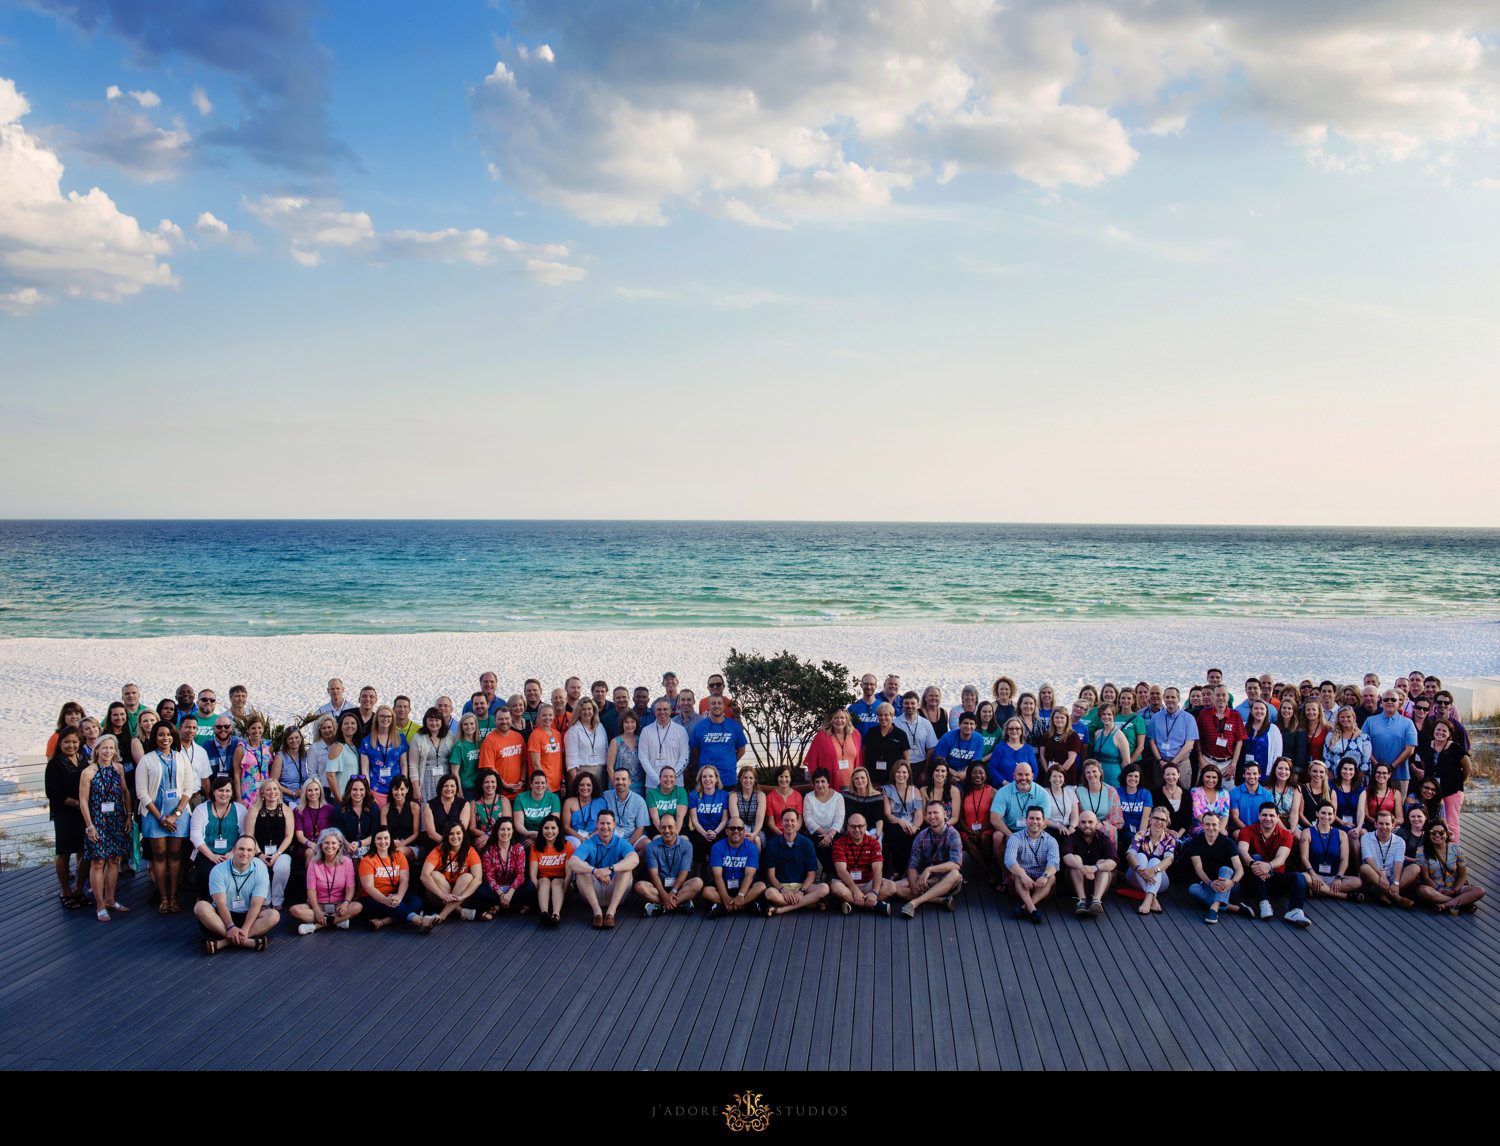 Corporate Event Group Photo in front of beach in Florida